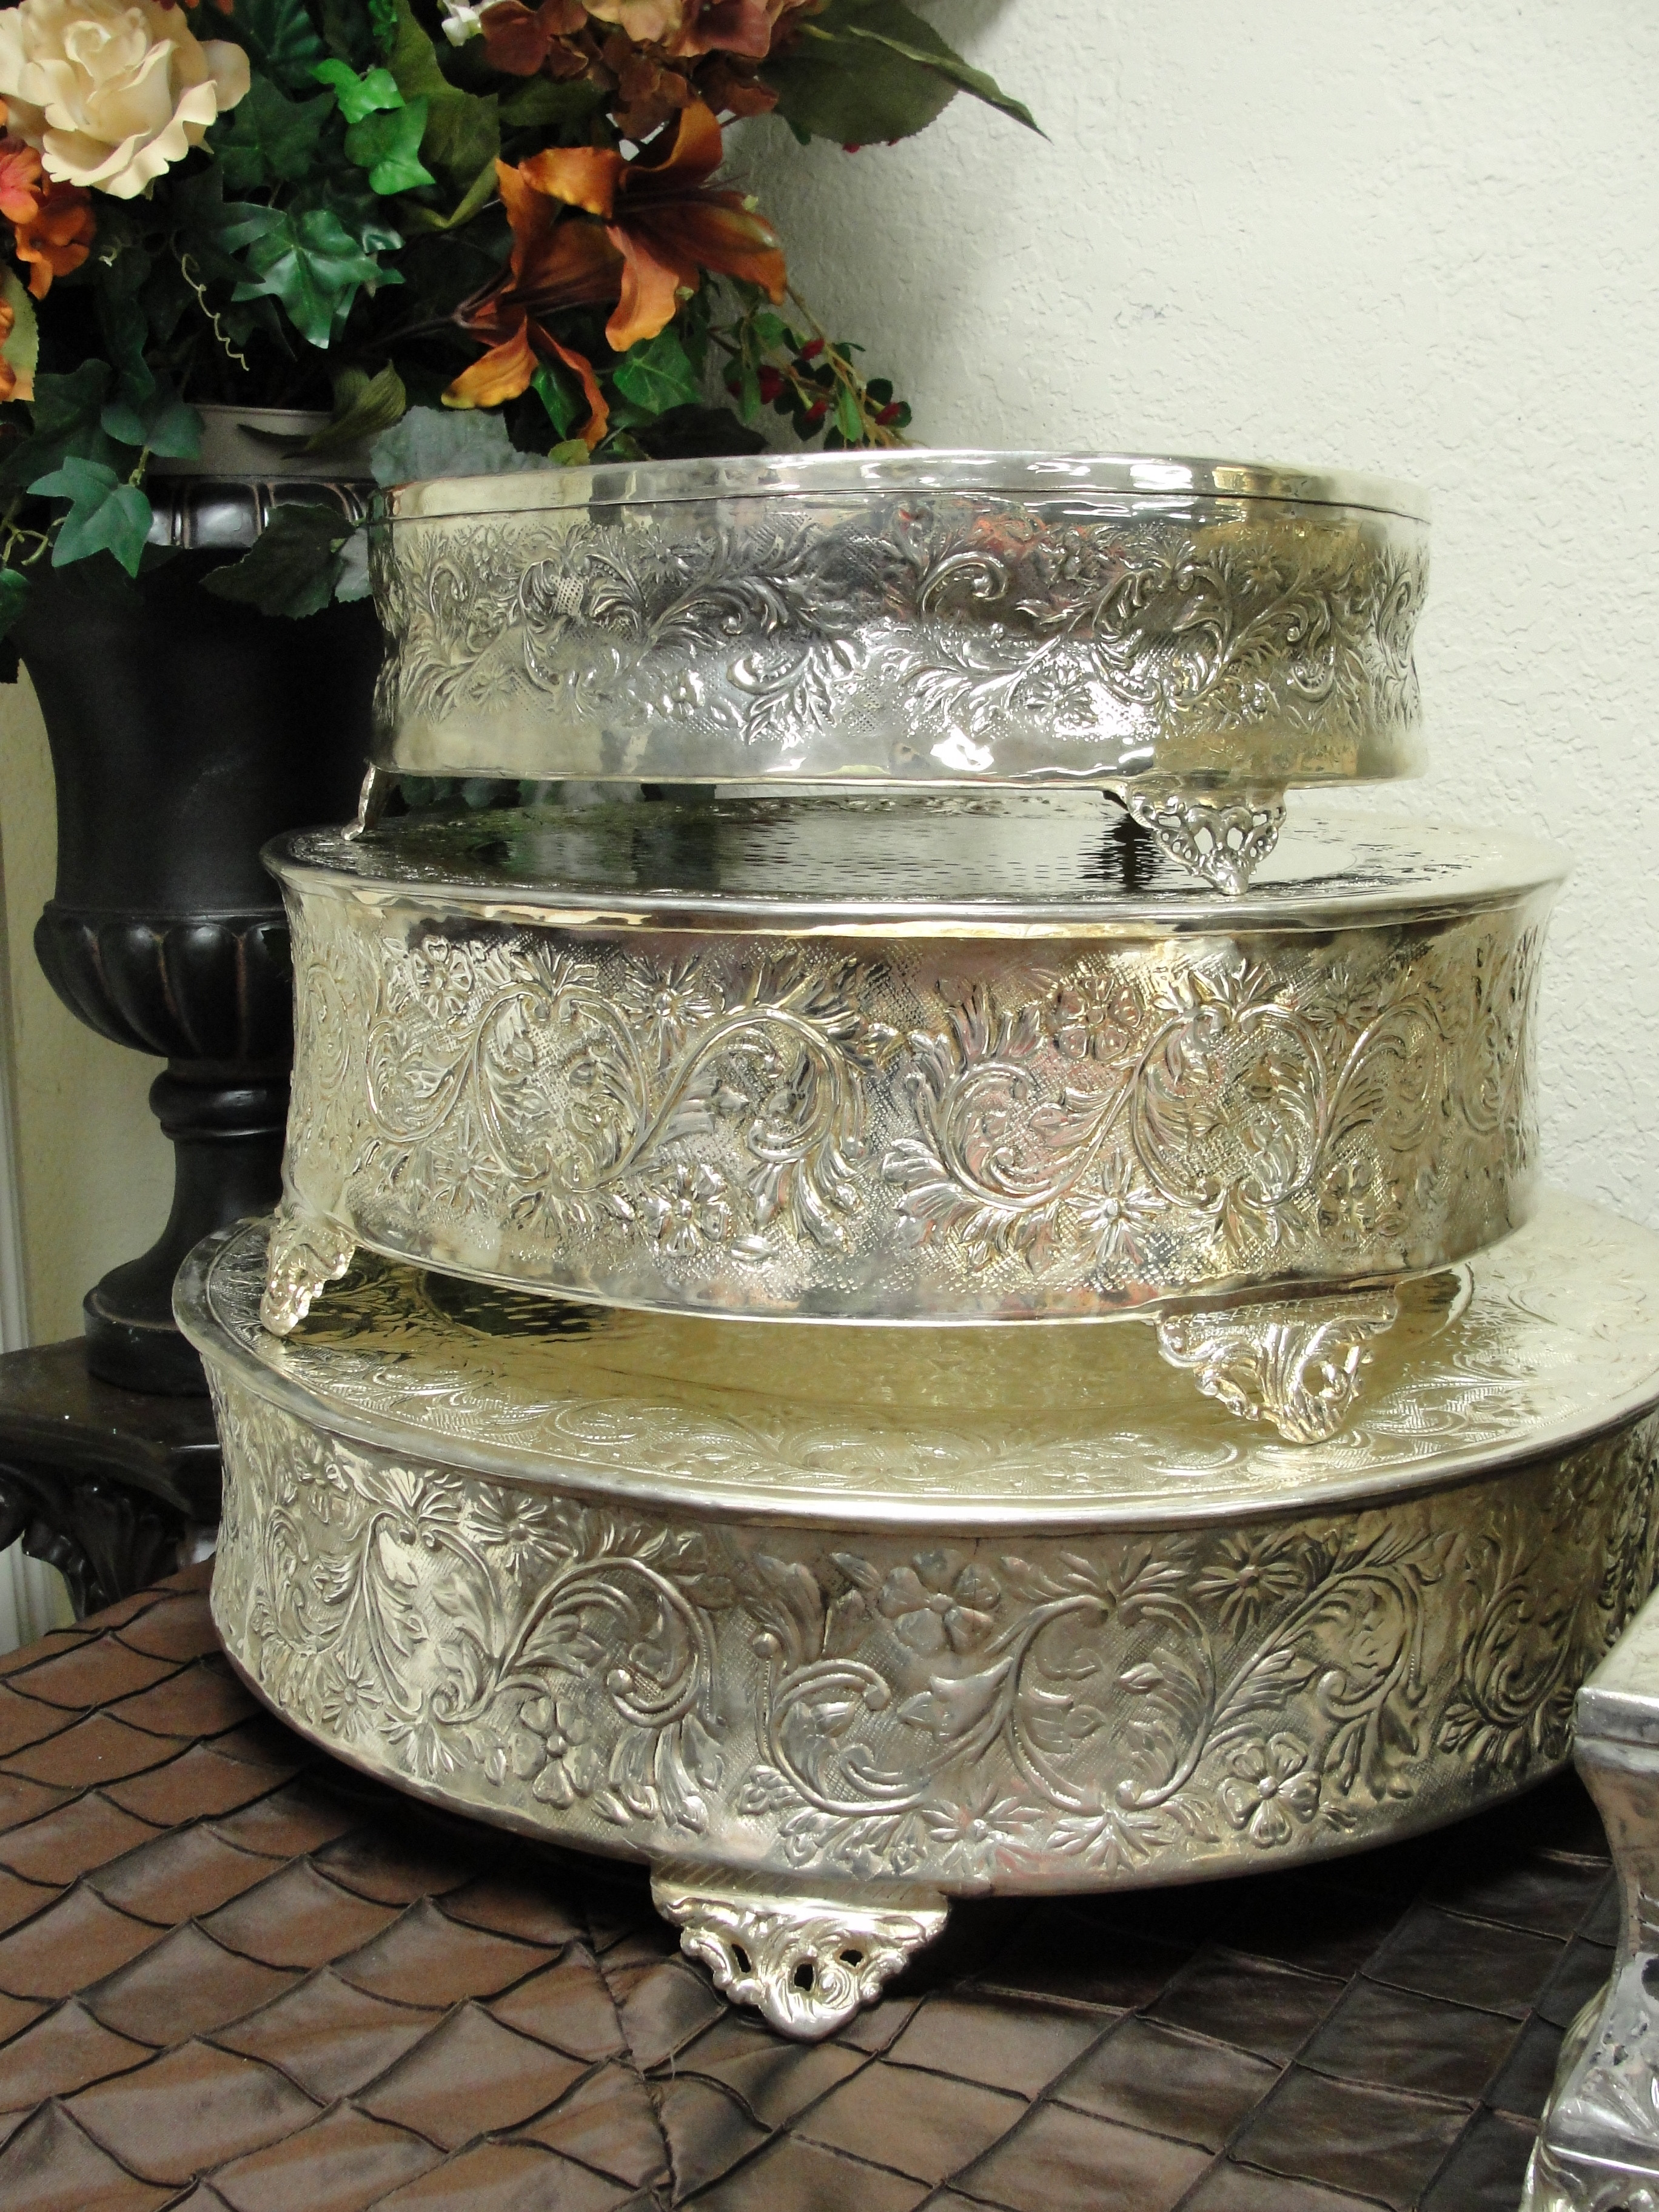 Cake Plateaus For Wedding Cakes  Elegant Cake Stands Victoria Champagne 12 Inch Metal Cake